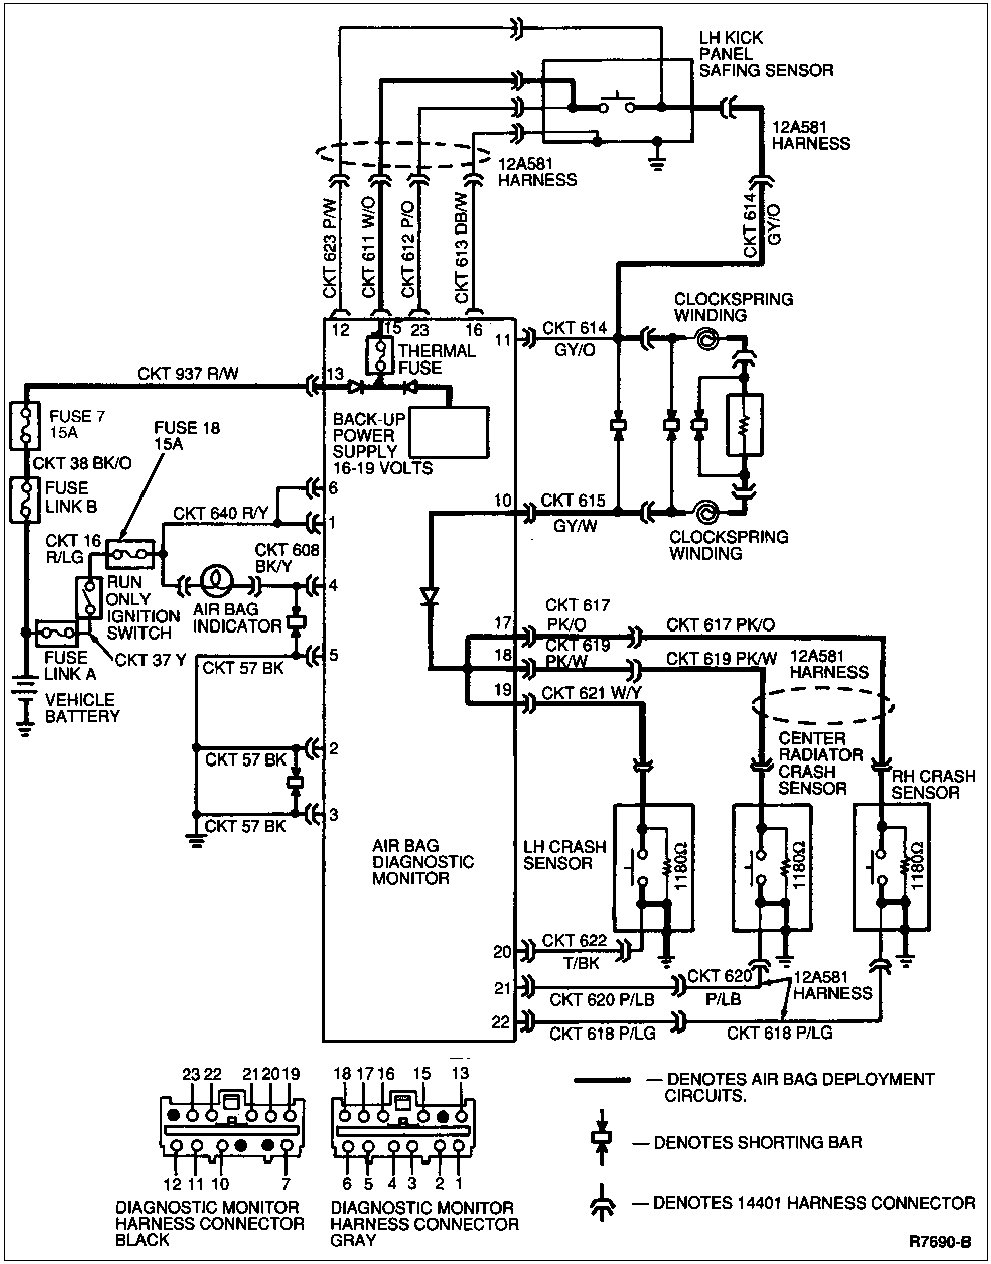 Pat Airbag Wiring Diagram - Wiring Diagram Shw